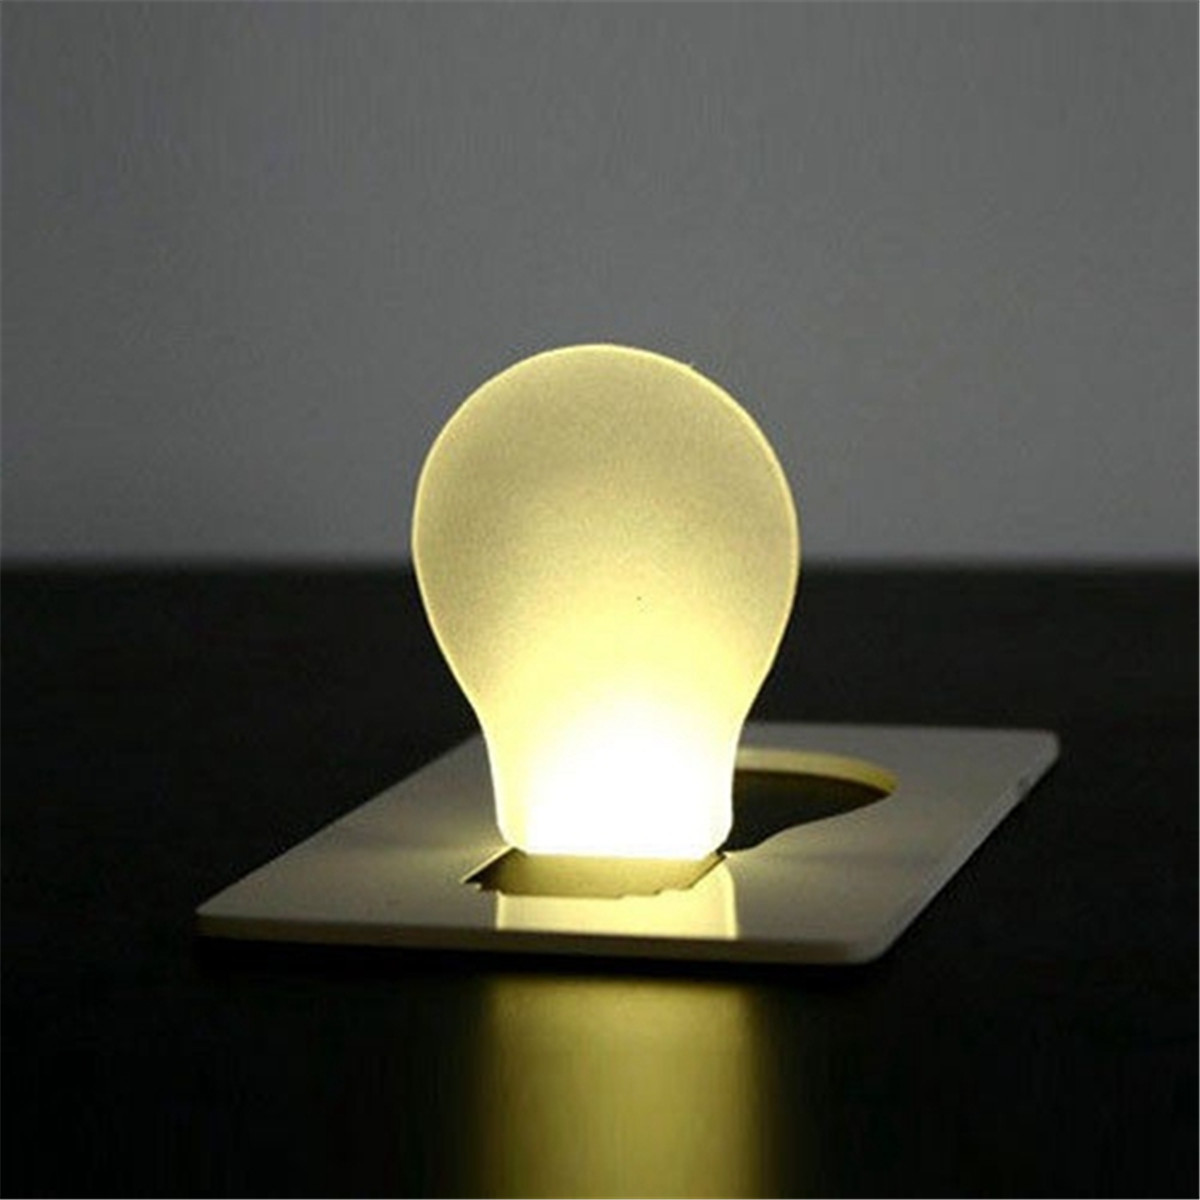 CLAITE Mini Wallet For Pocket Credit Card Size Portable LED Night Light Lamp Bulbs Cute Paper Card Flash Light